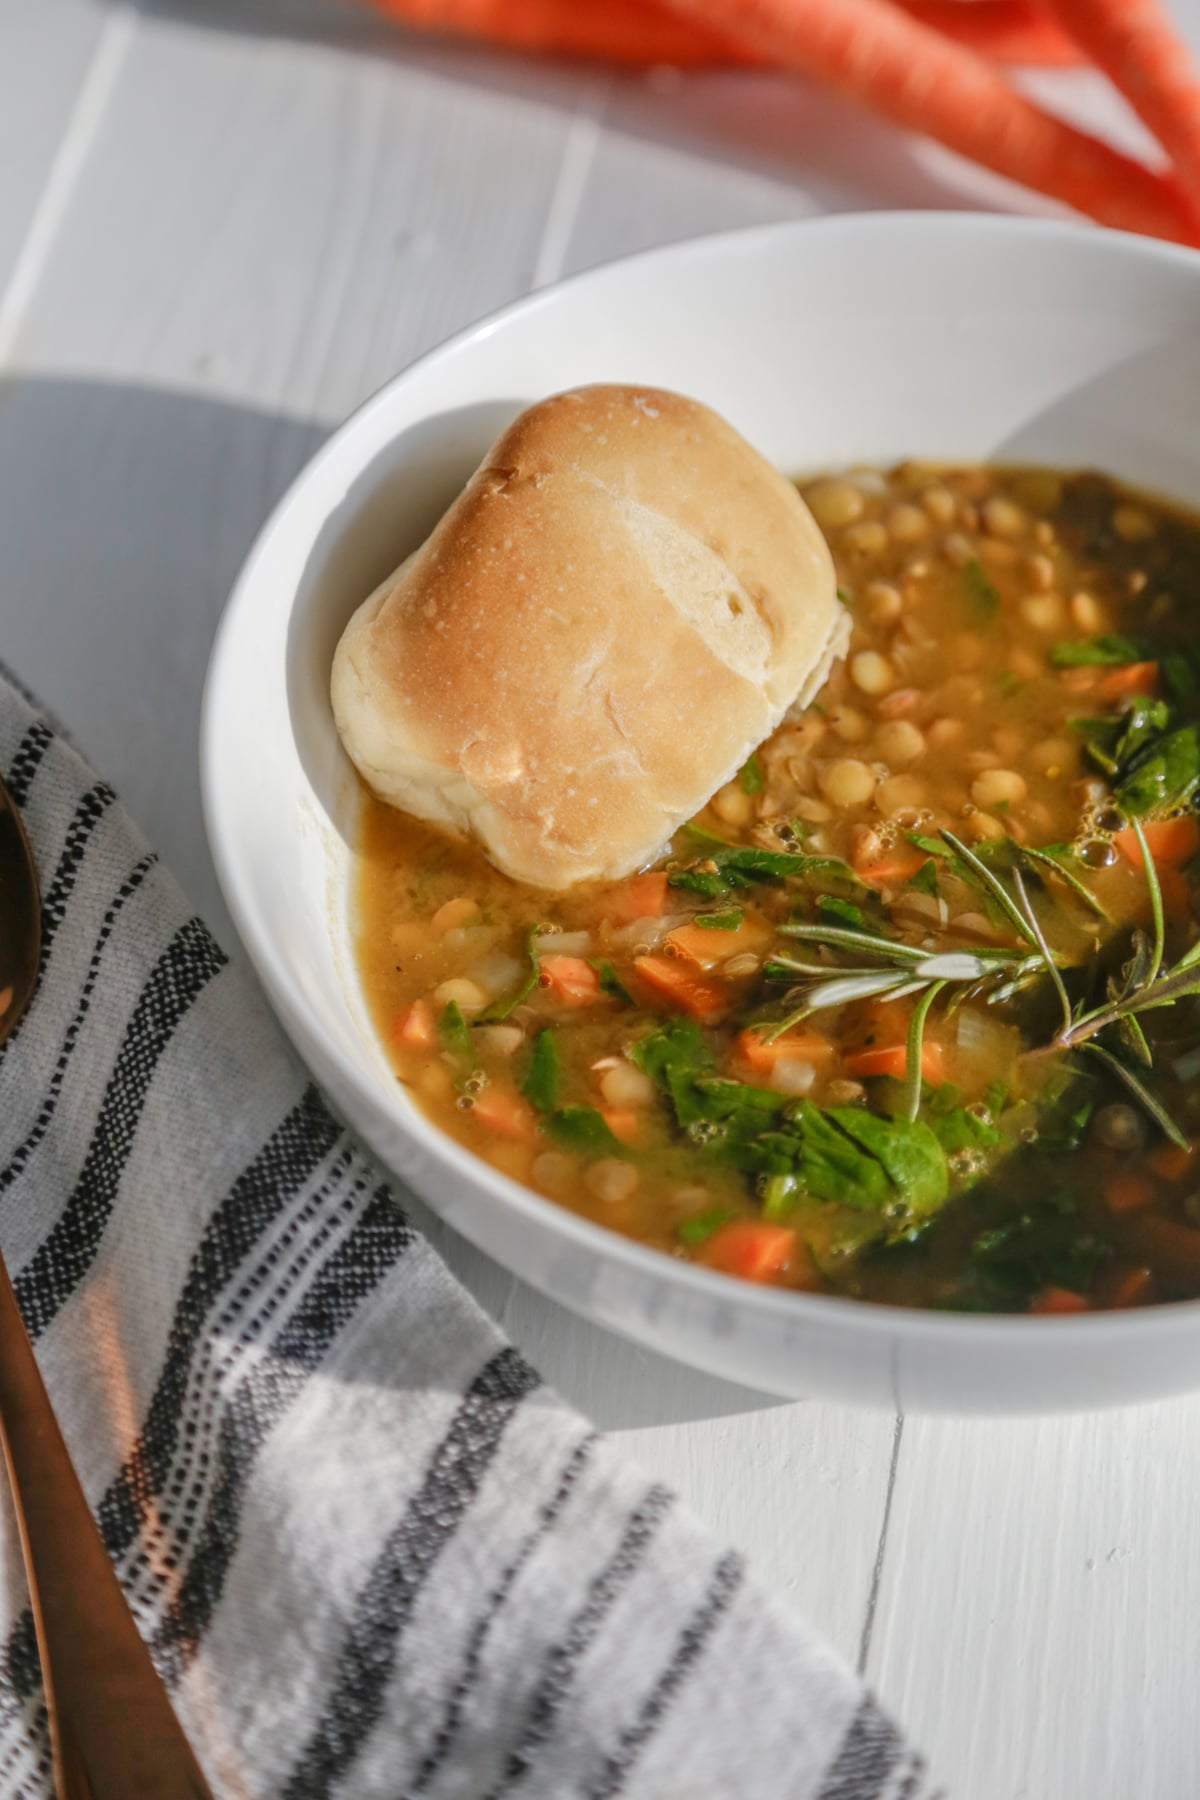 An overhead shot of lentil and carrot soup with a piece of bread in the bowl and carrots in the background.